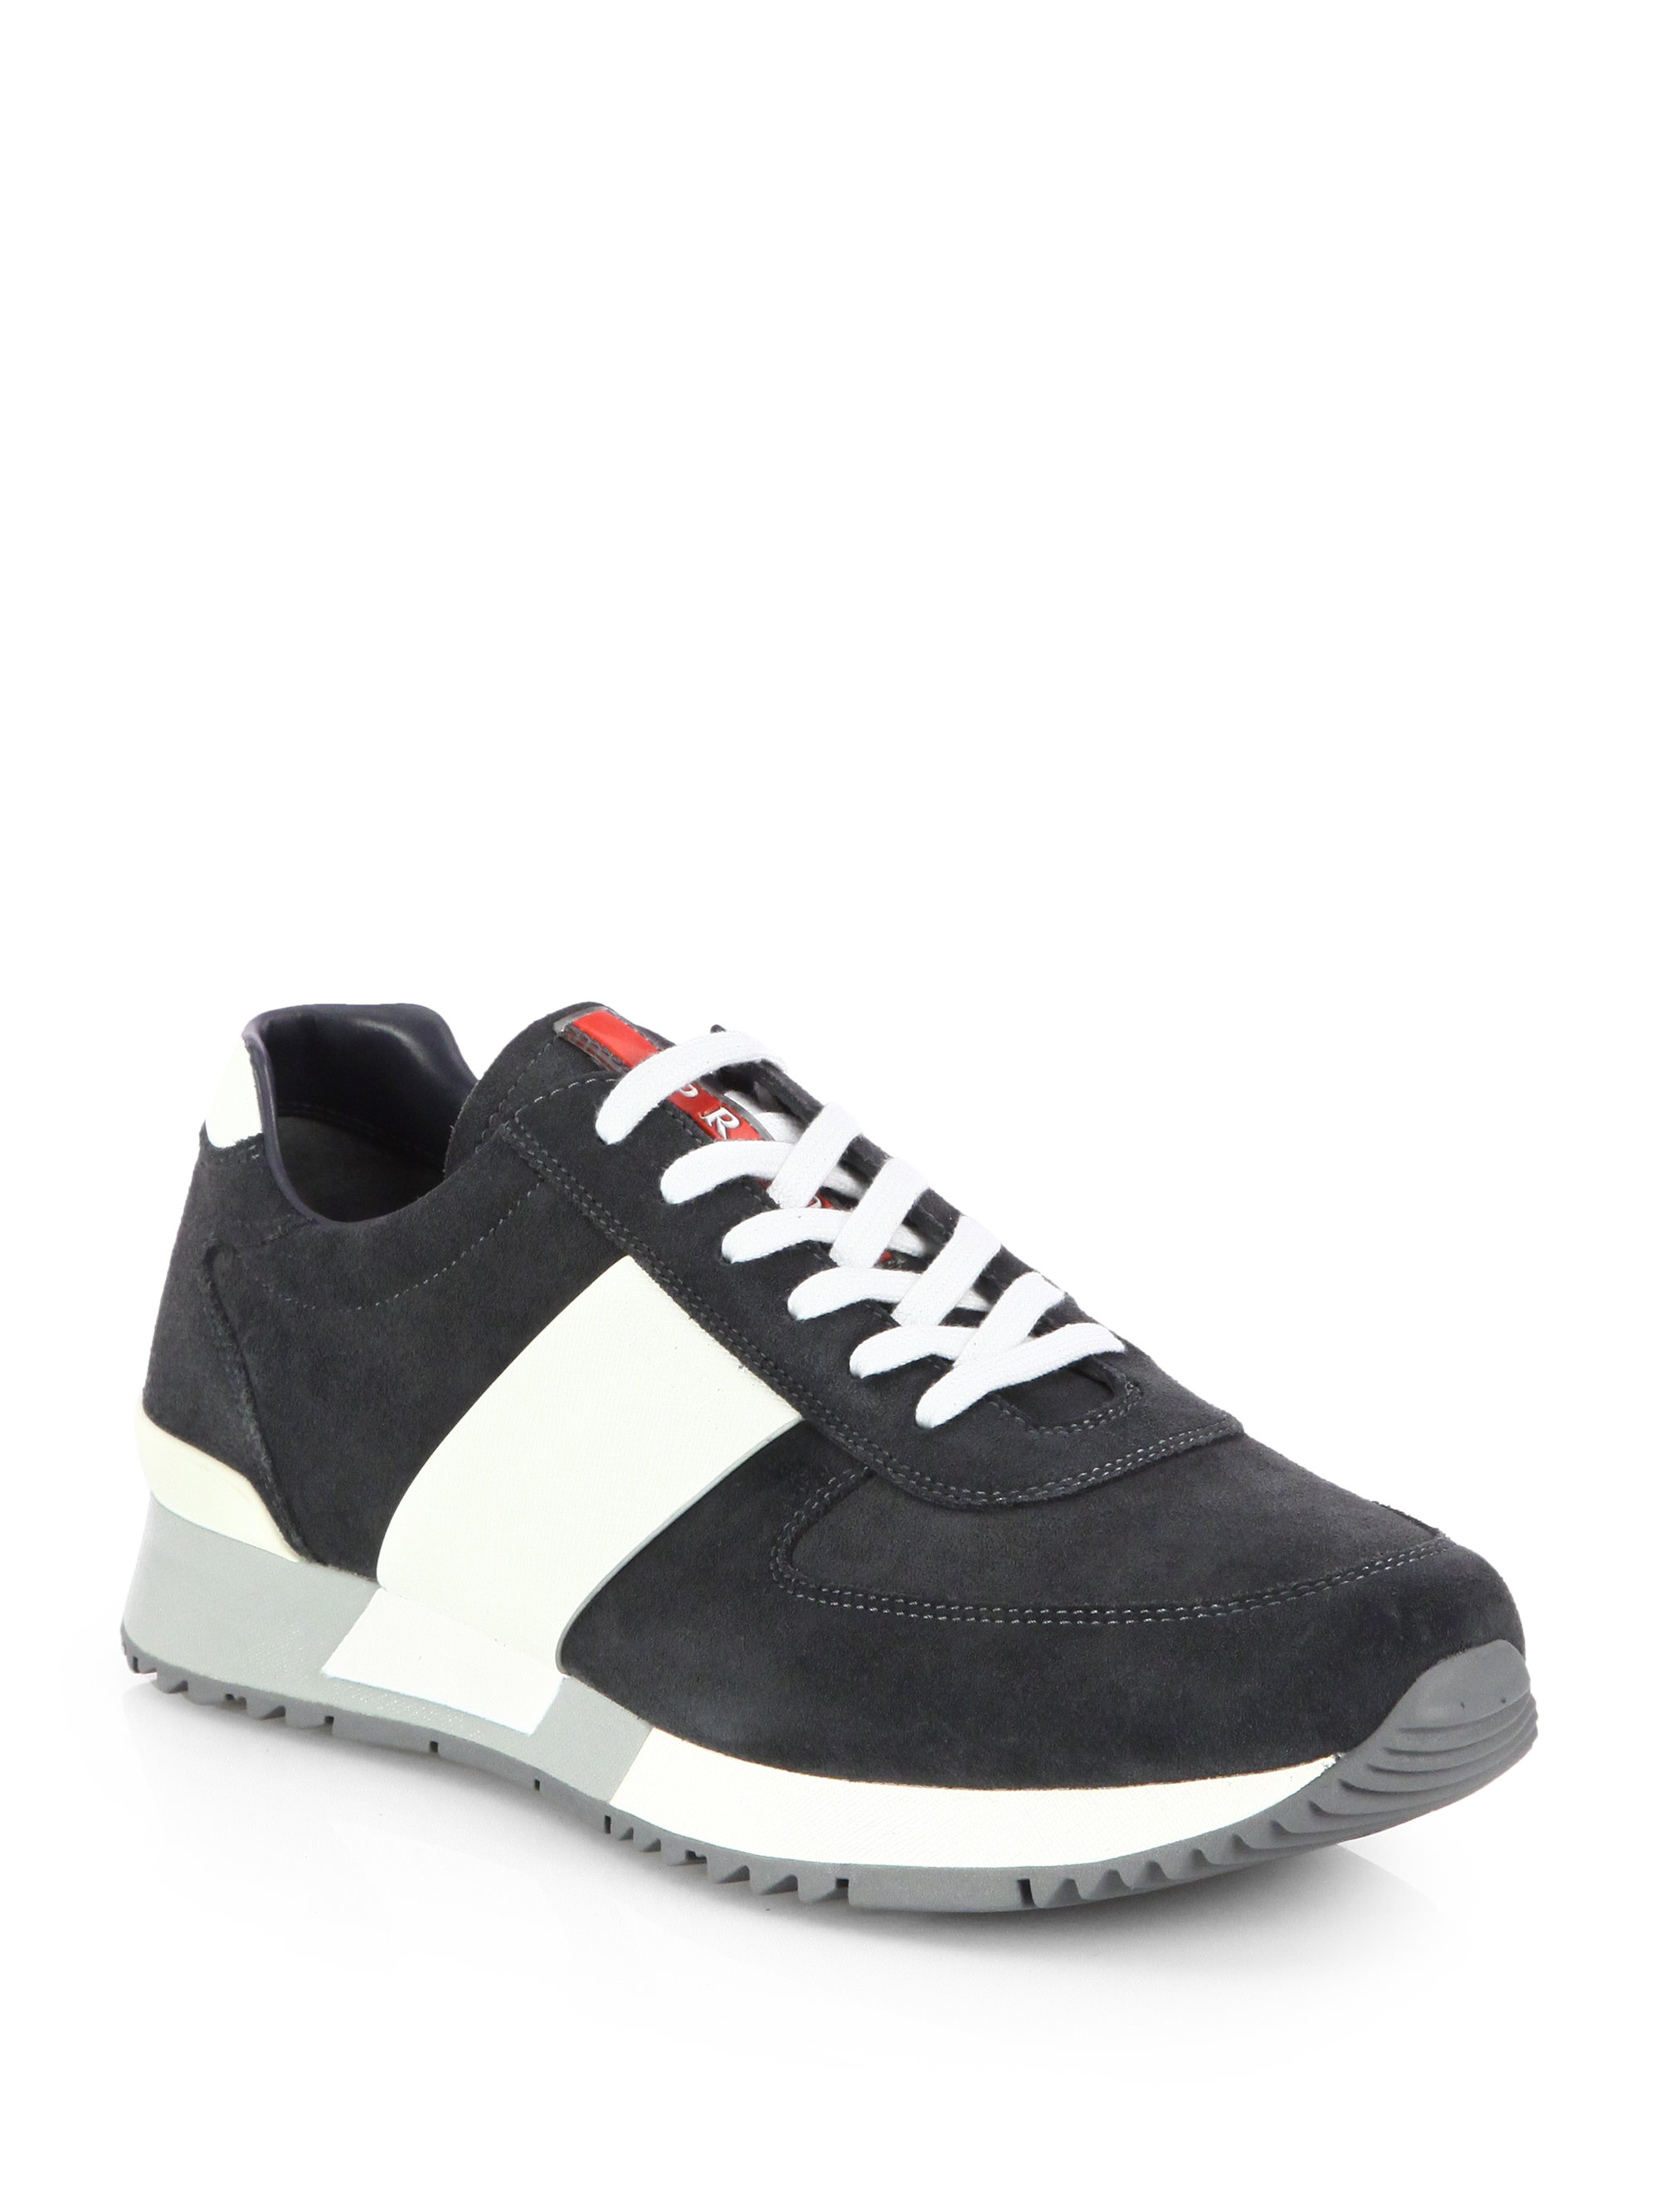 Prada Lace Up Mens Shoes